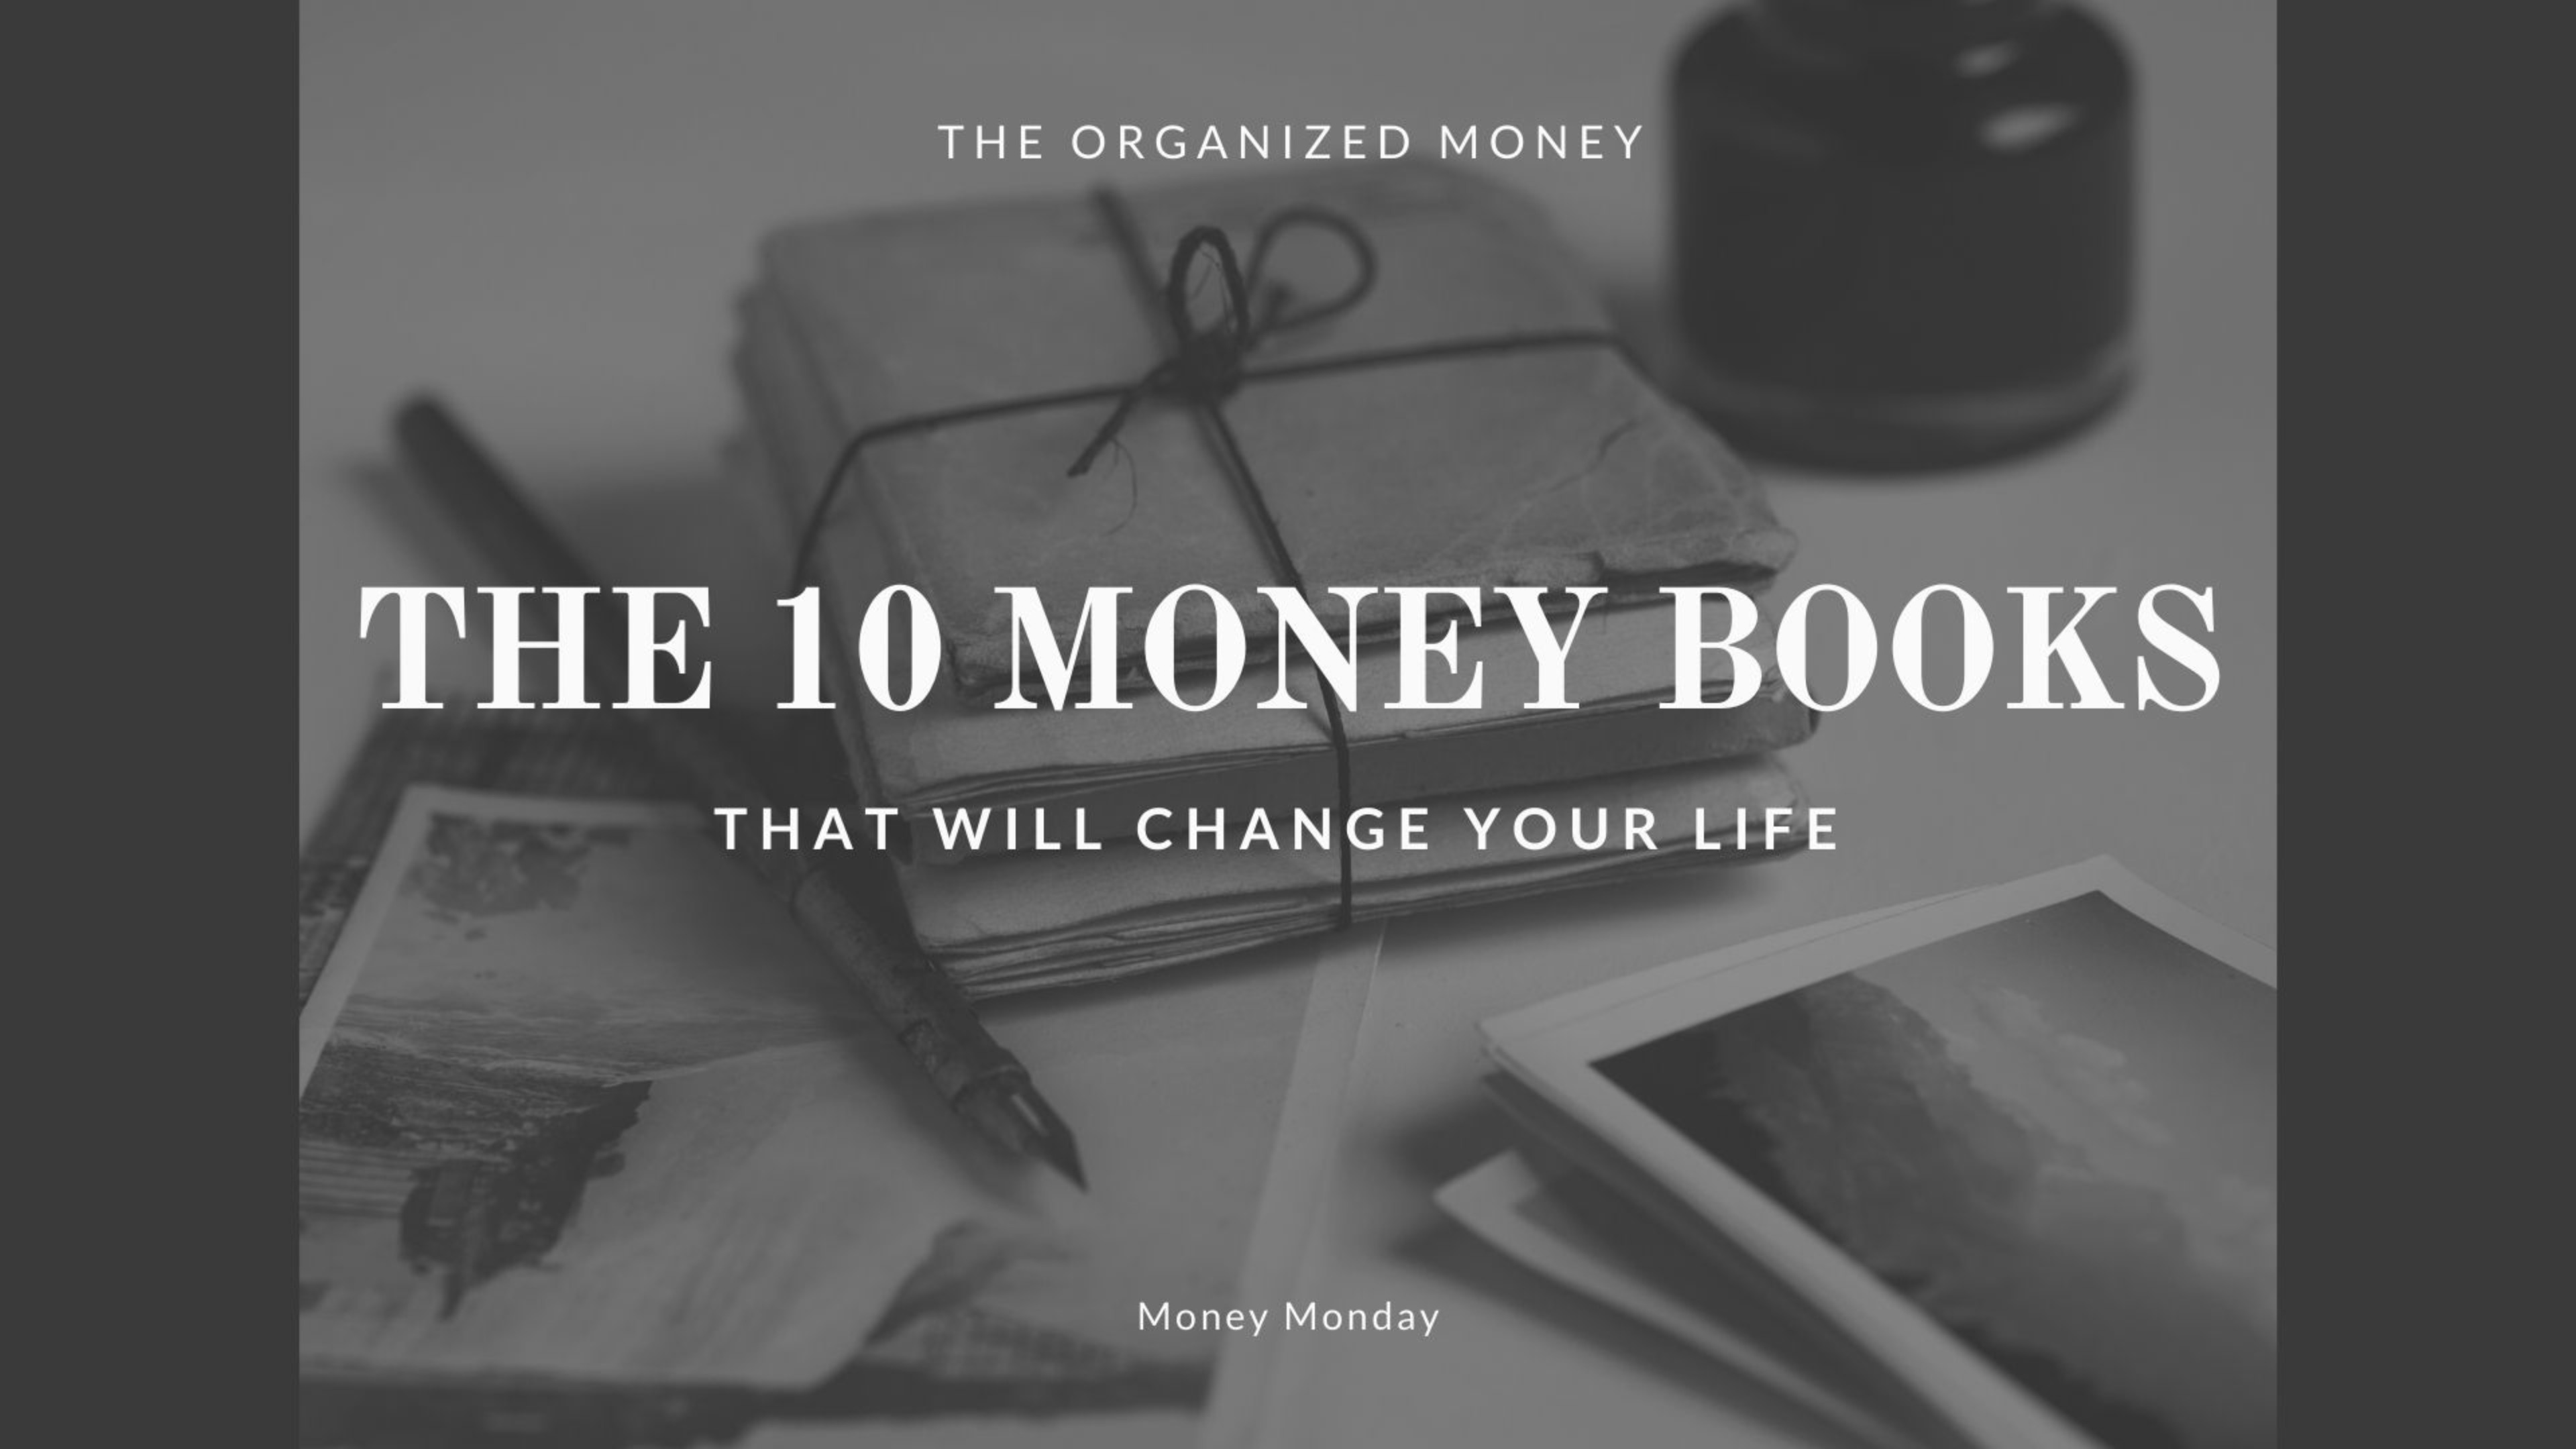 The 10 Money Books That Will Change Your Life